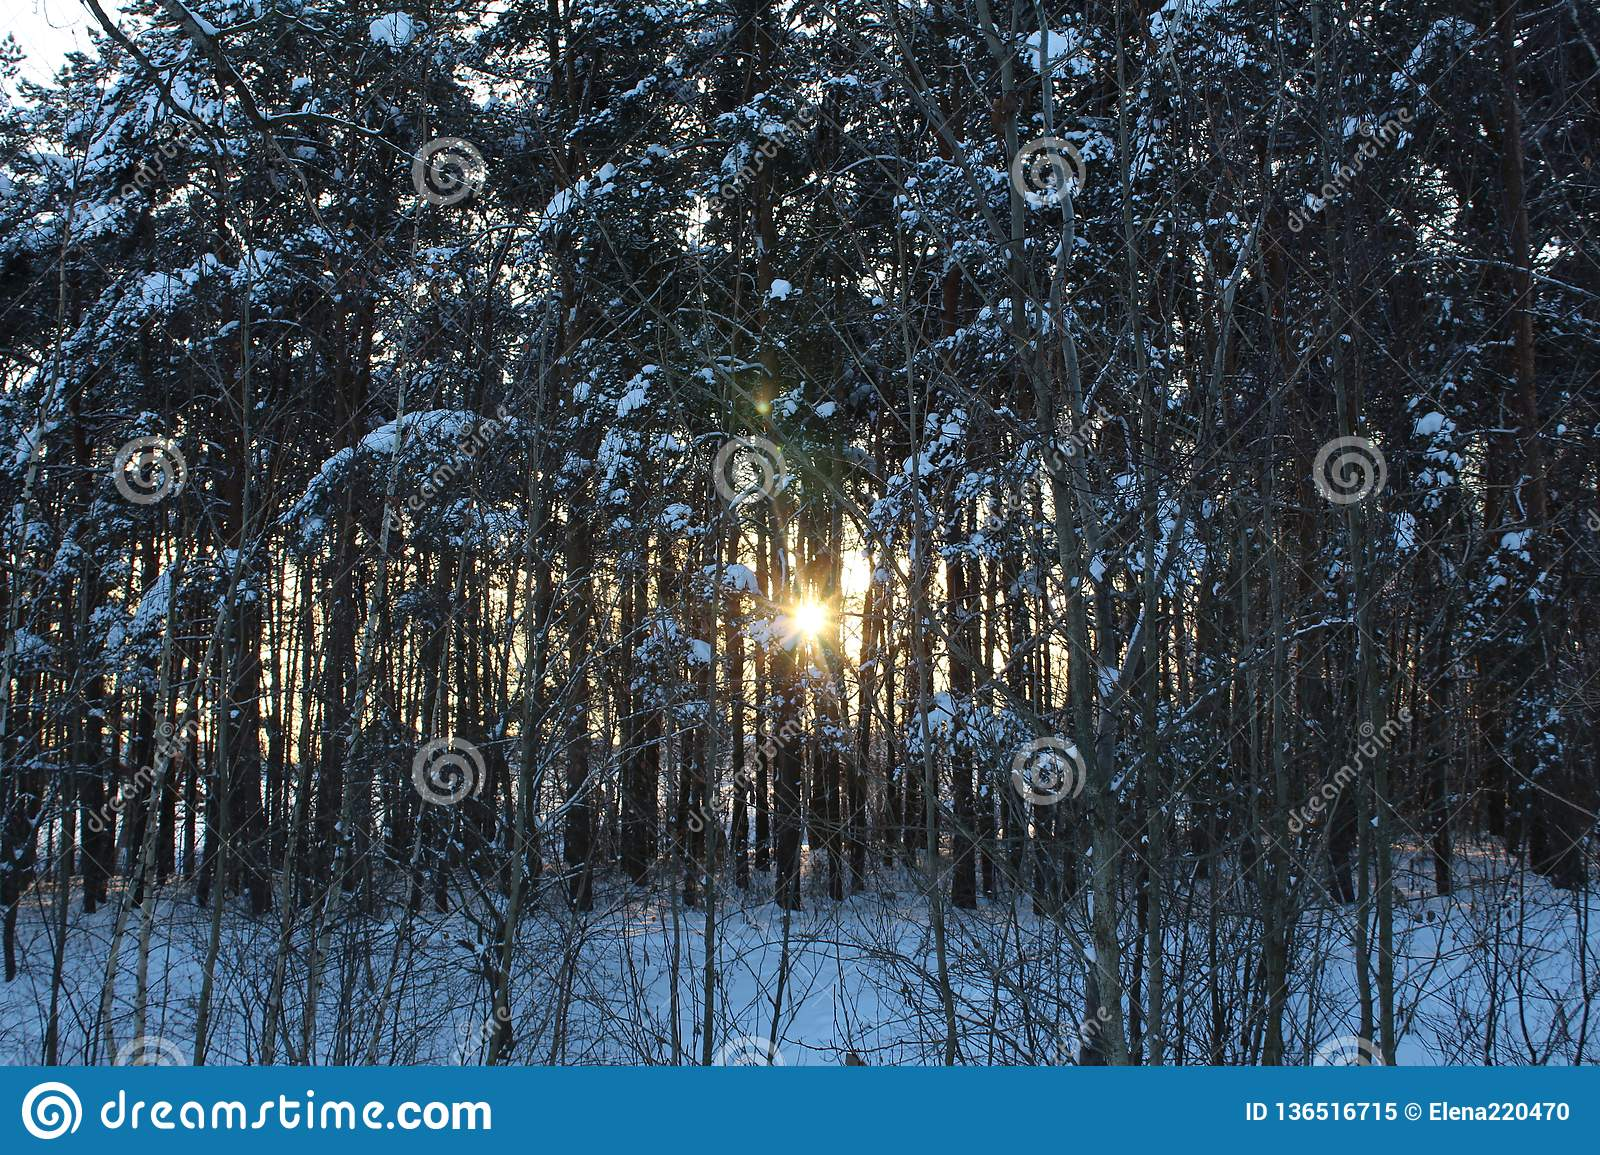 Landscape Of Winter Snow-covered Forest  Stock Image - Image of snow